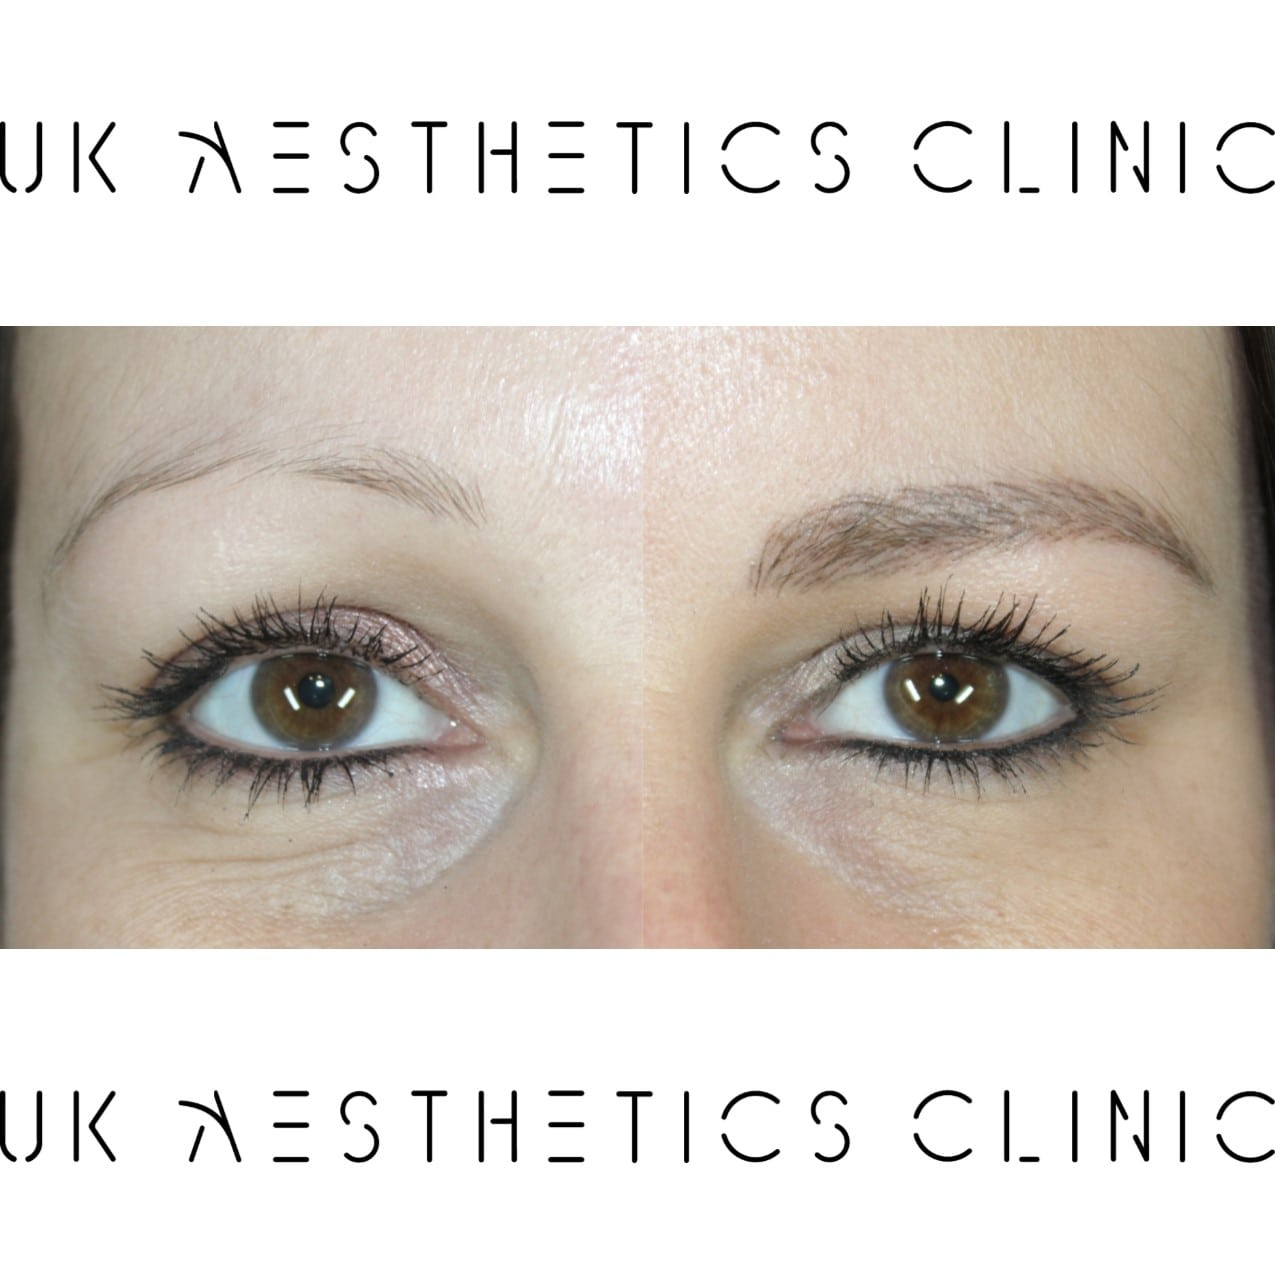 microblading-treatment-uk-aesthetics-clinic-Tyana